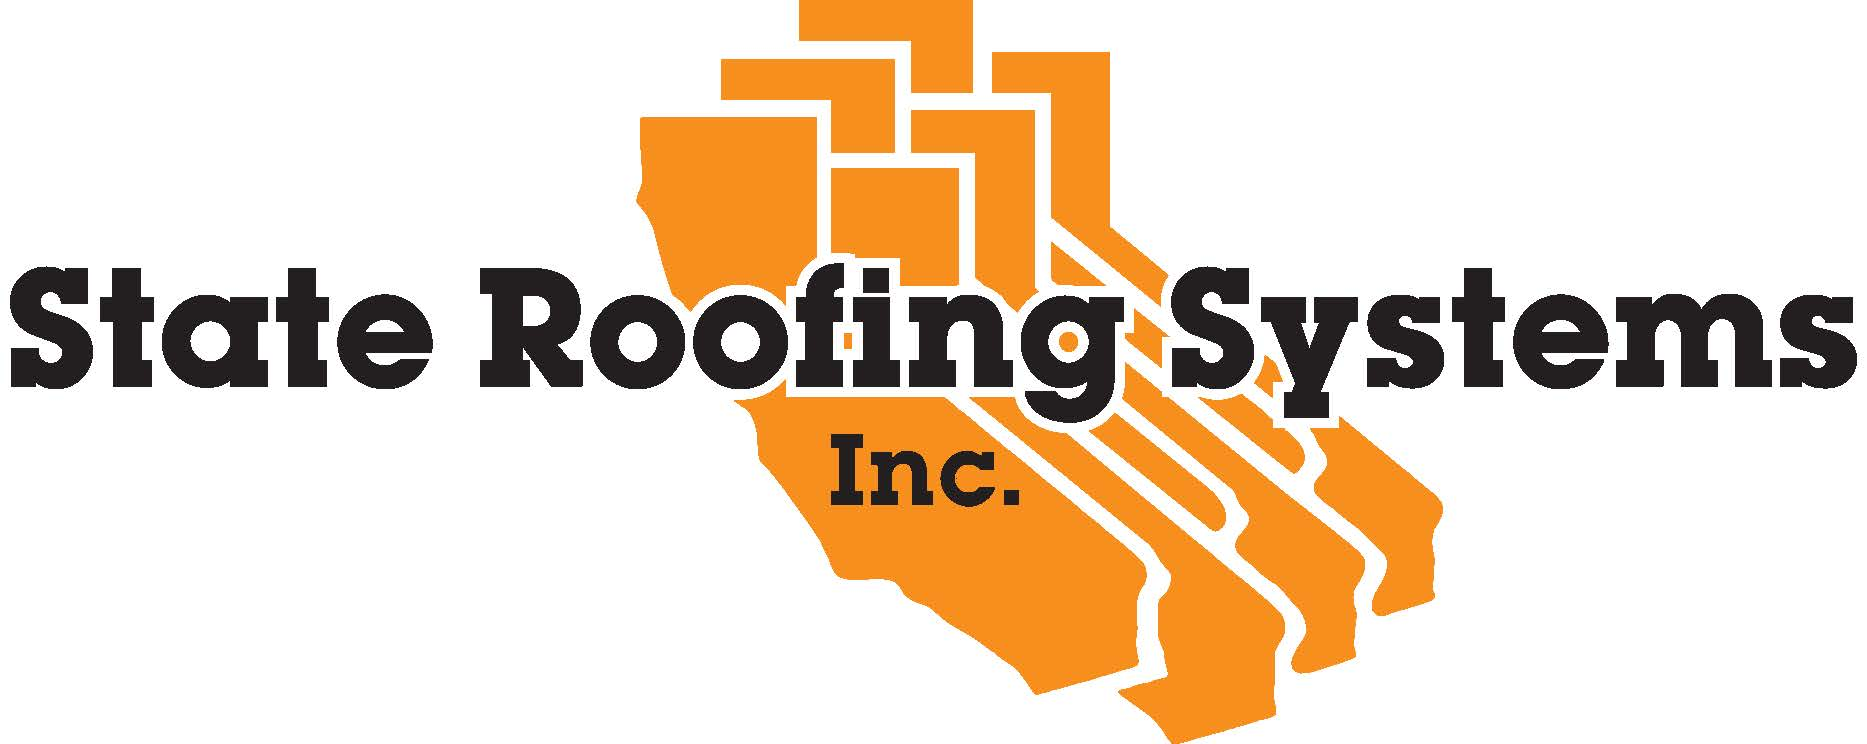 Gold_State Roofing Systems